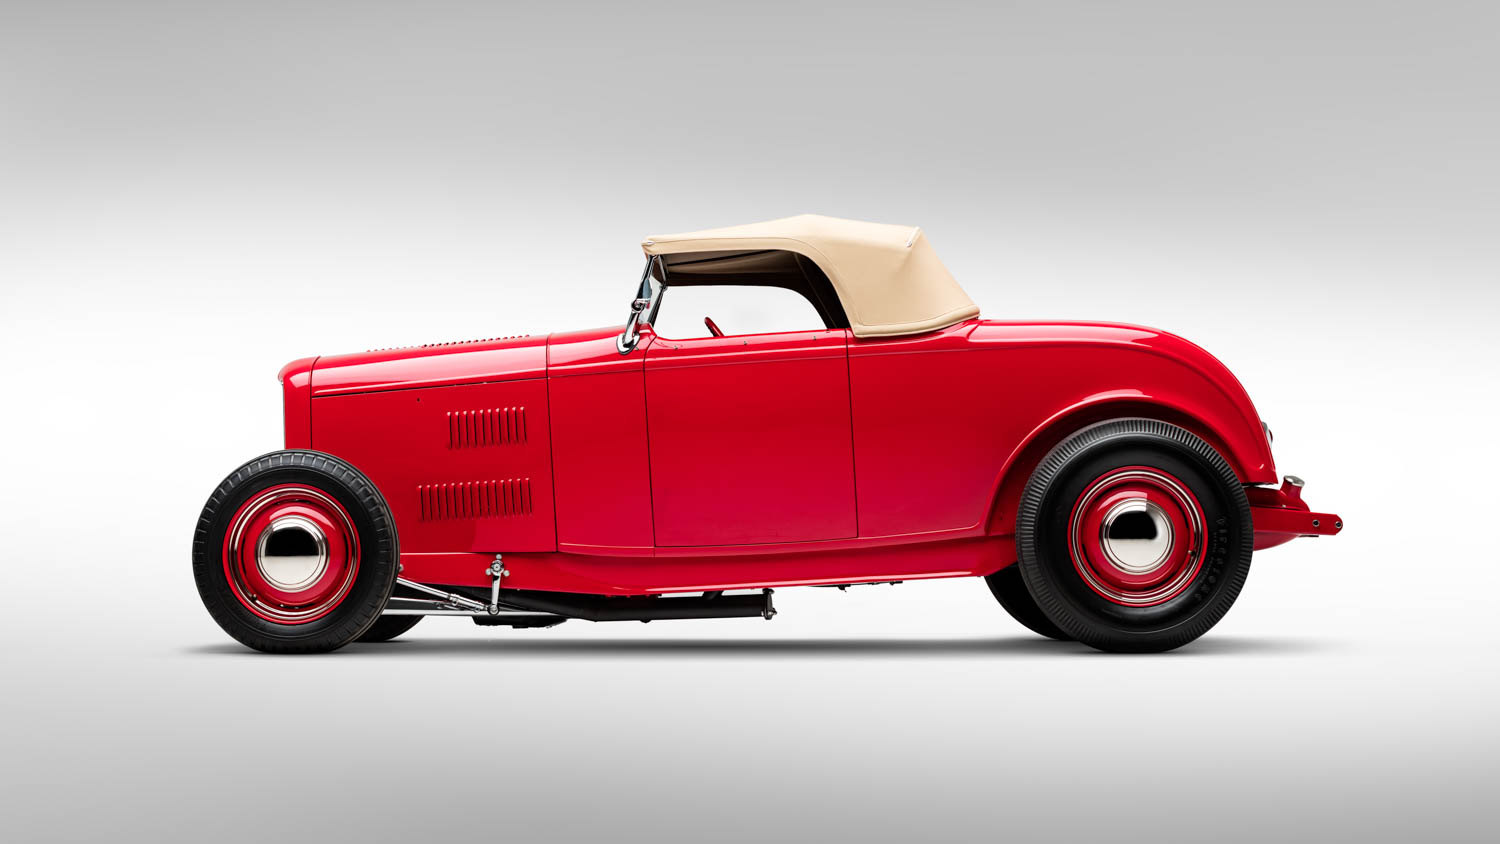 1932 Ford V-8 Roadster (McGee Roadster)